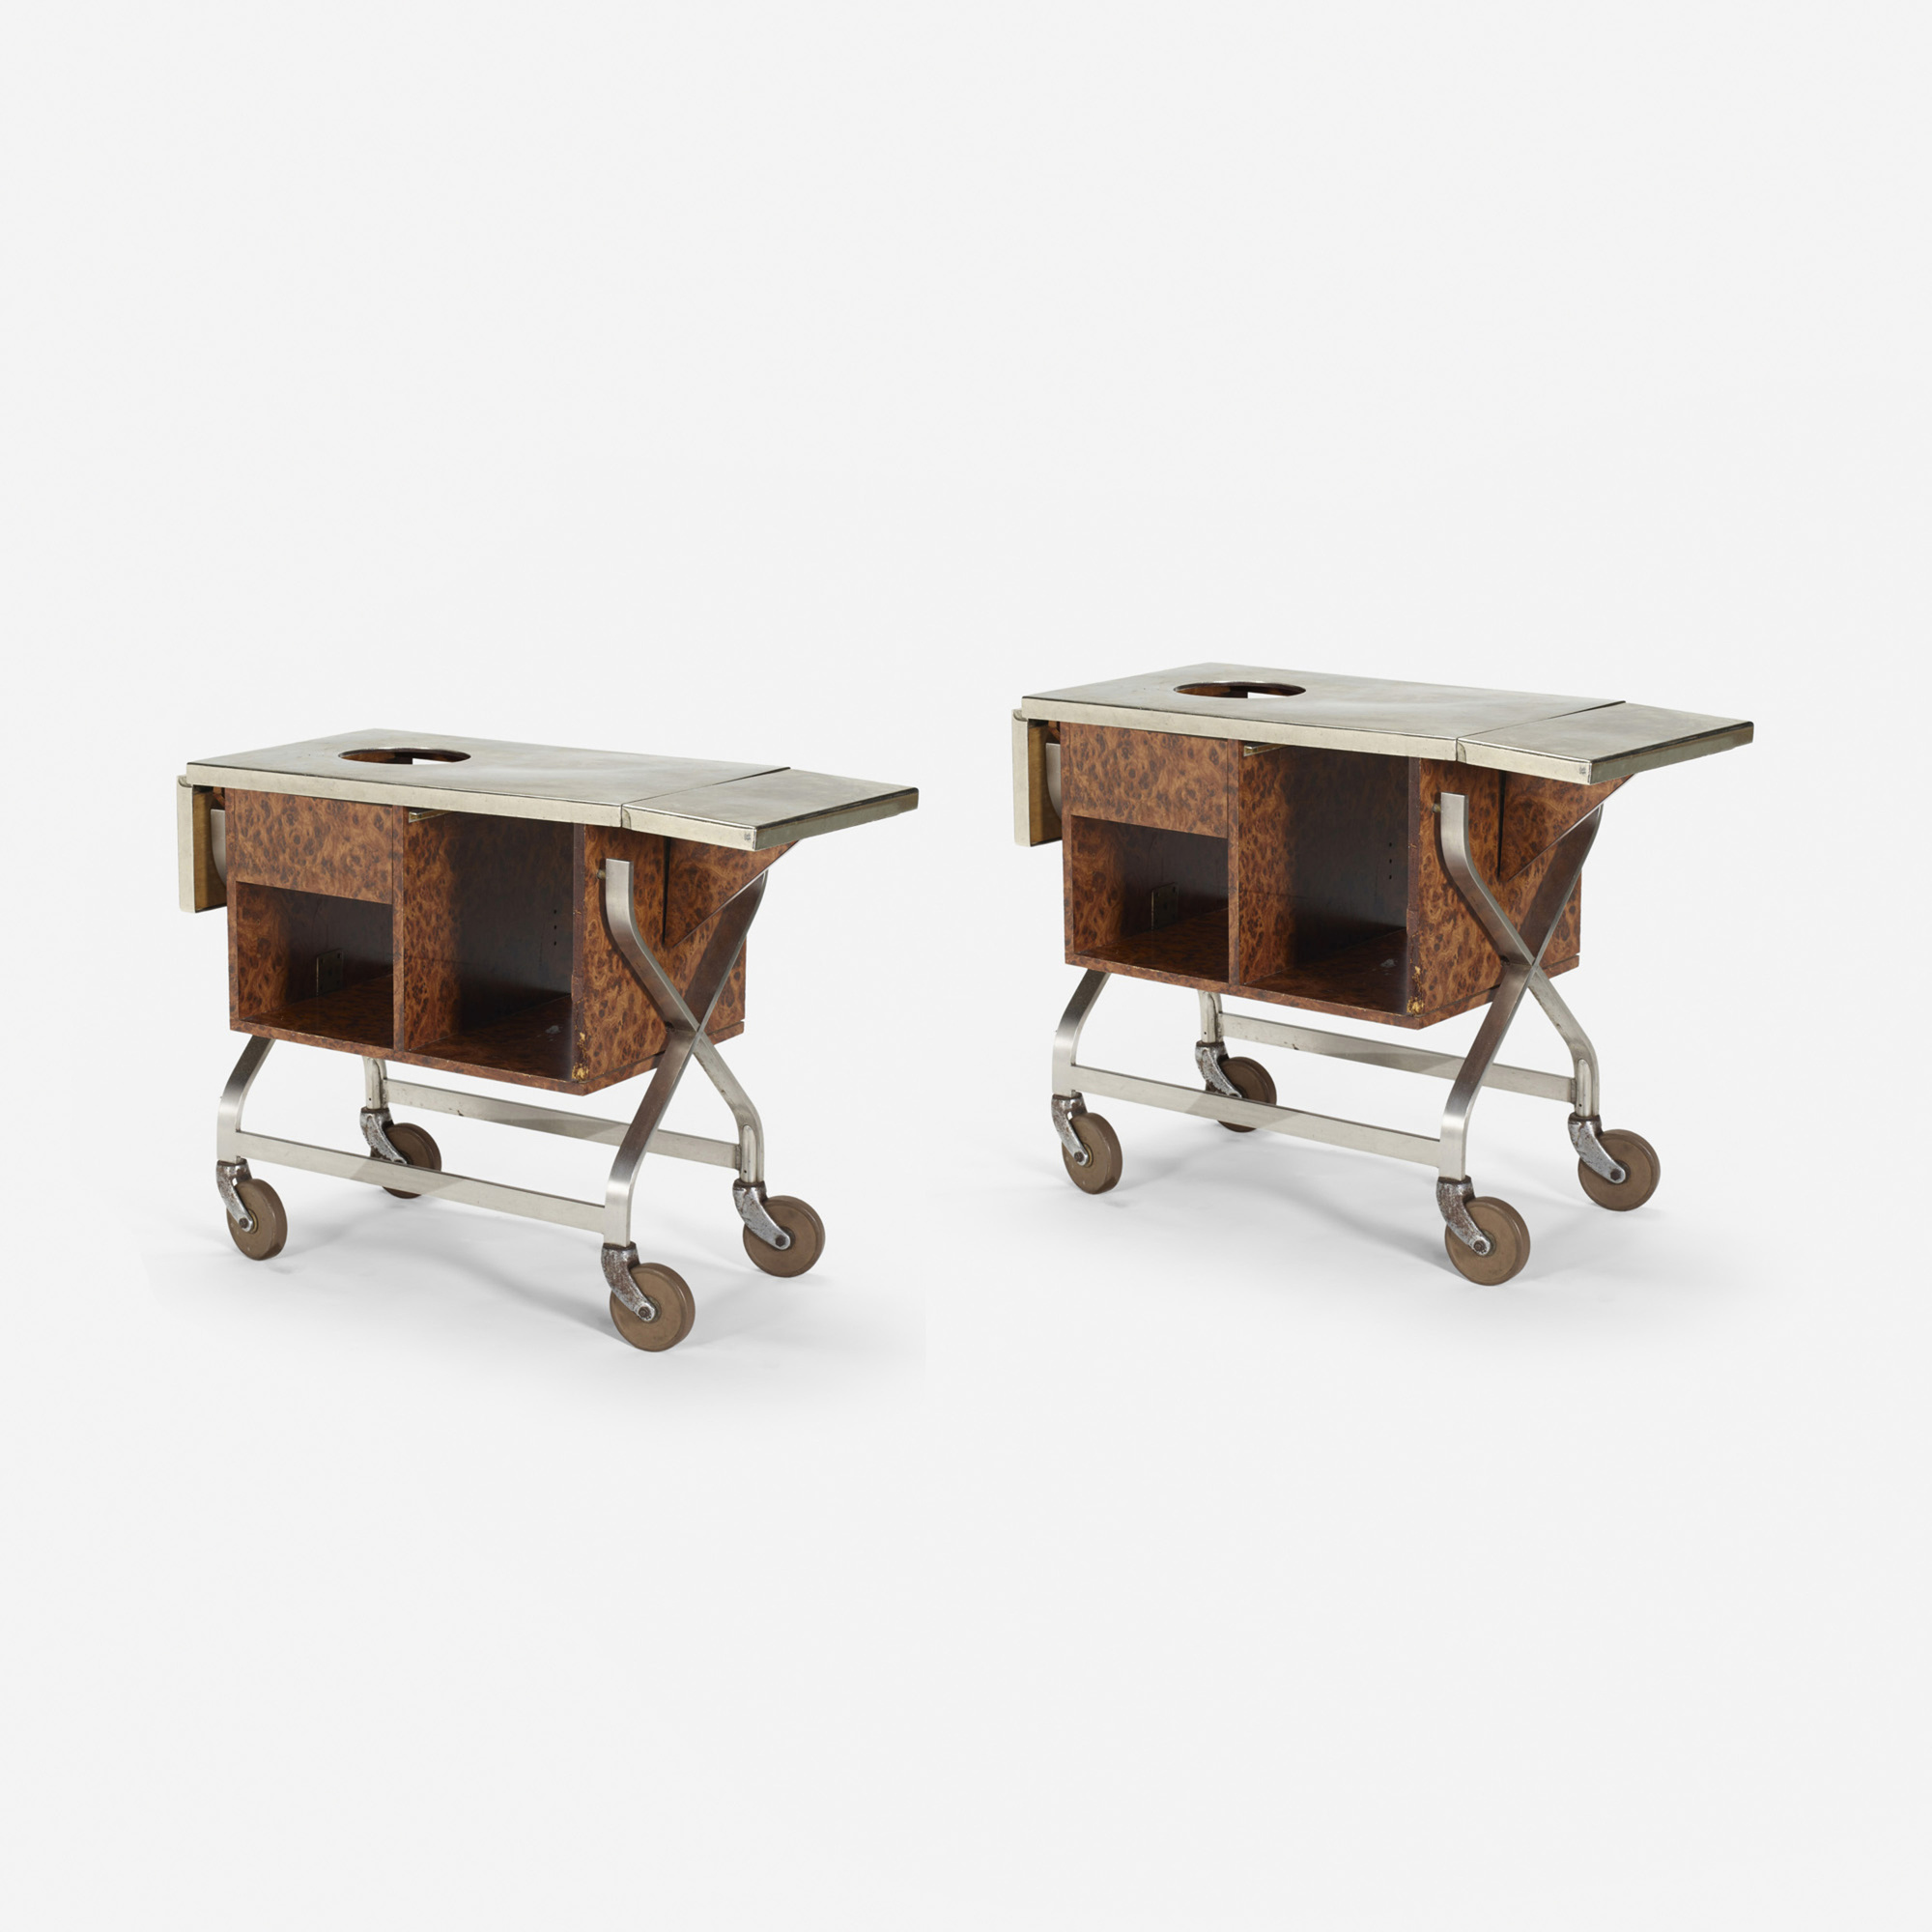 417: Garth and Ada Louise Huxtable / Serving carts from The Four Seasons, pair (1 of 1)